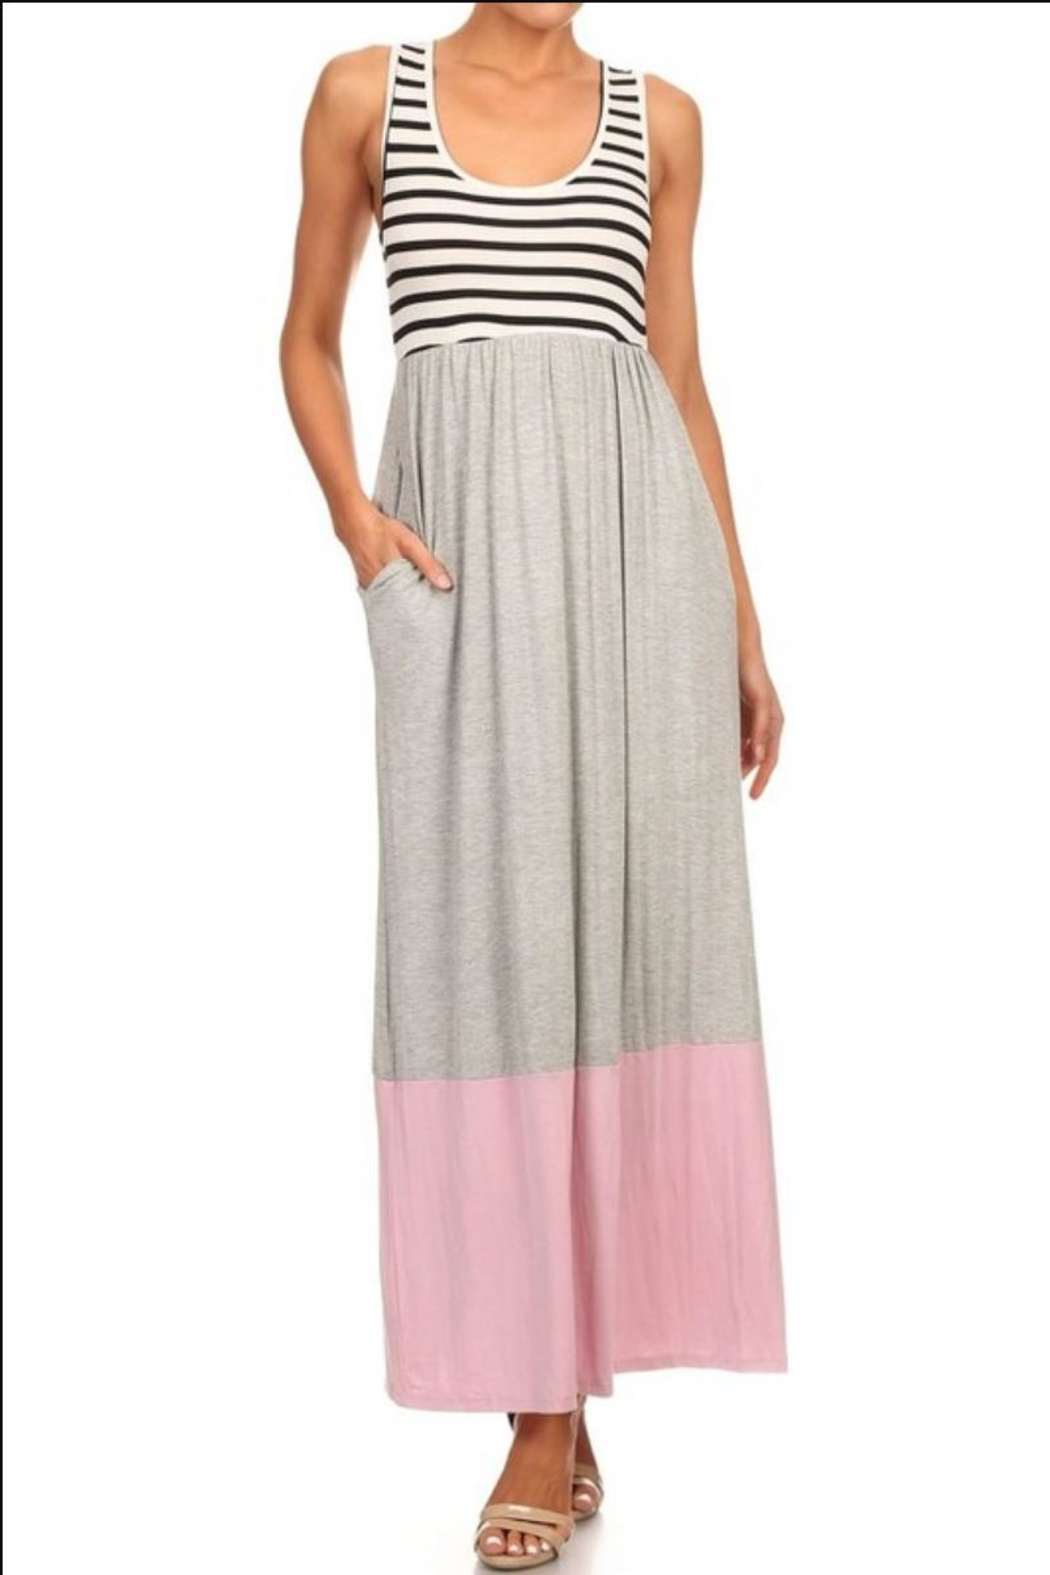 M USA Stripe/colorblock Jersey-Knit Maxidress - Main Image